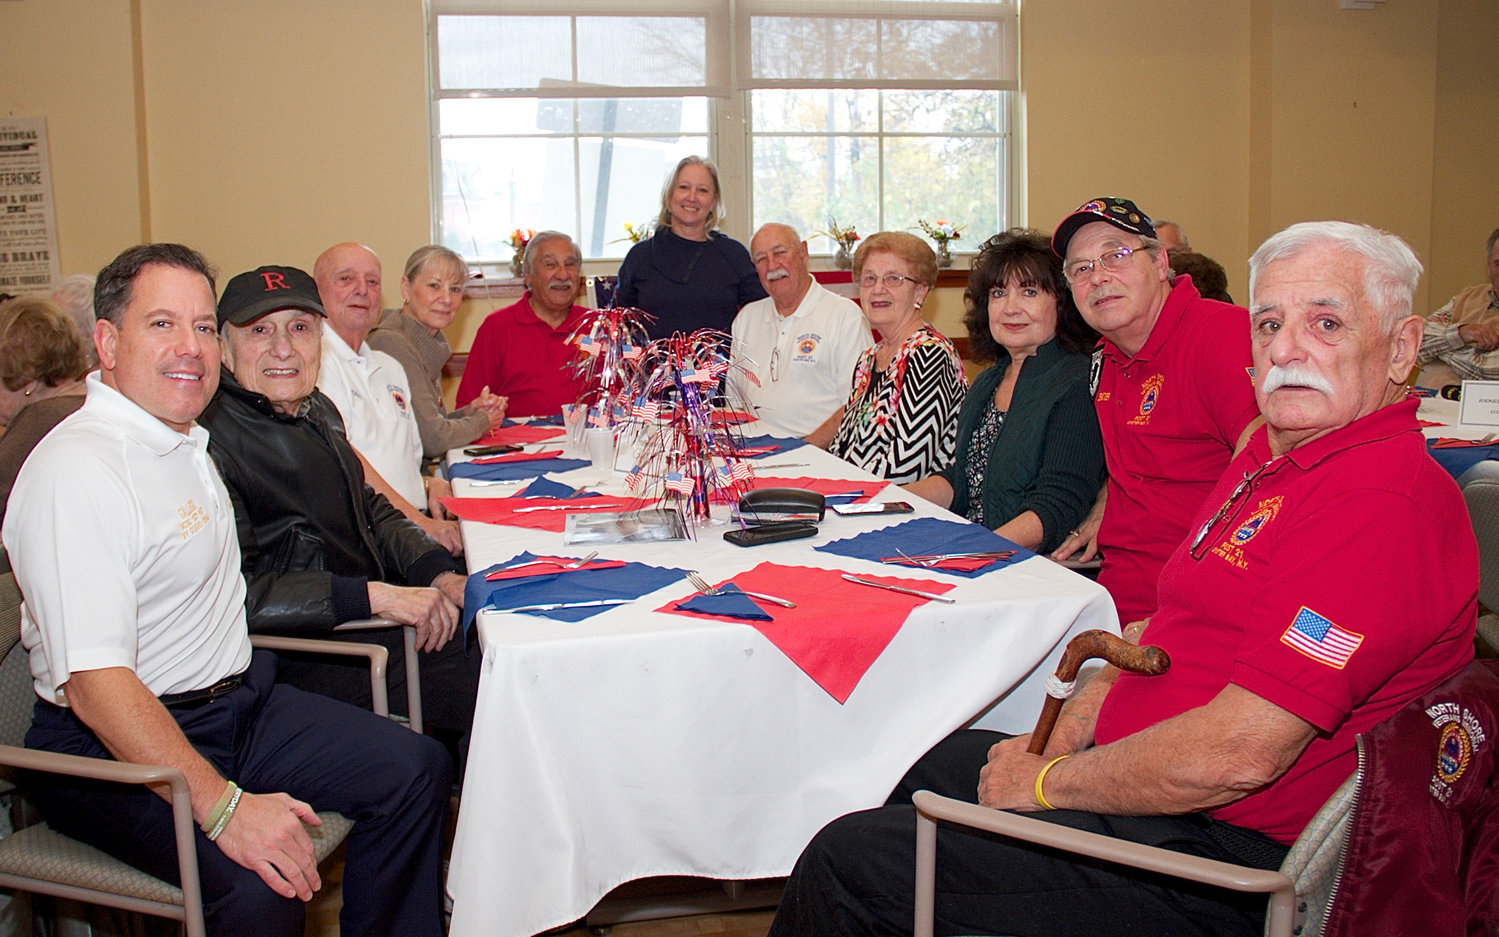 Veterans, their friends and the  staff of the Life Enrichment Center spent some quality time together at the Veterans Day celebration.